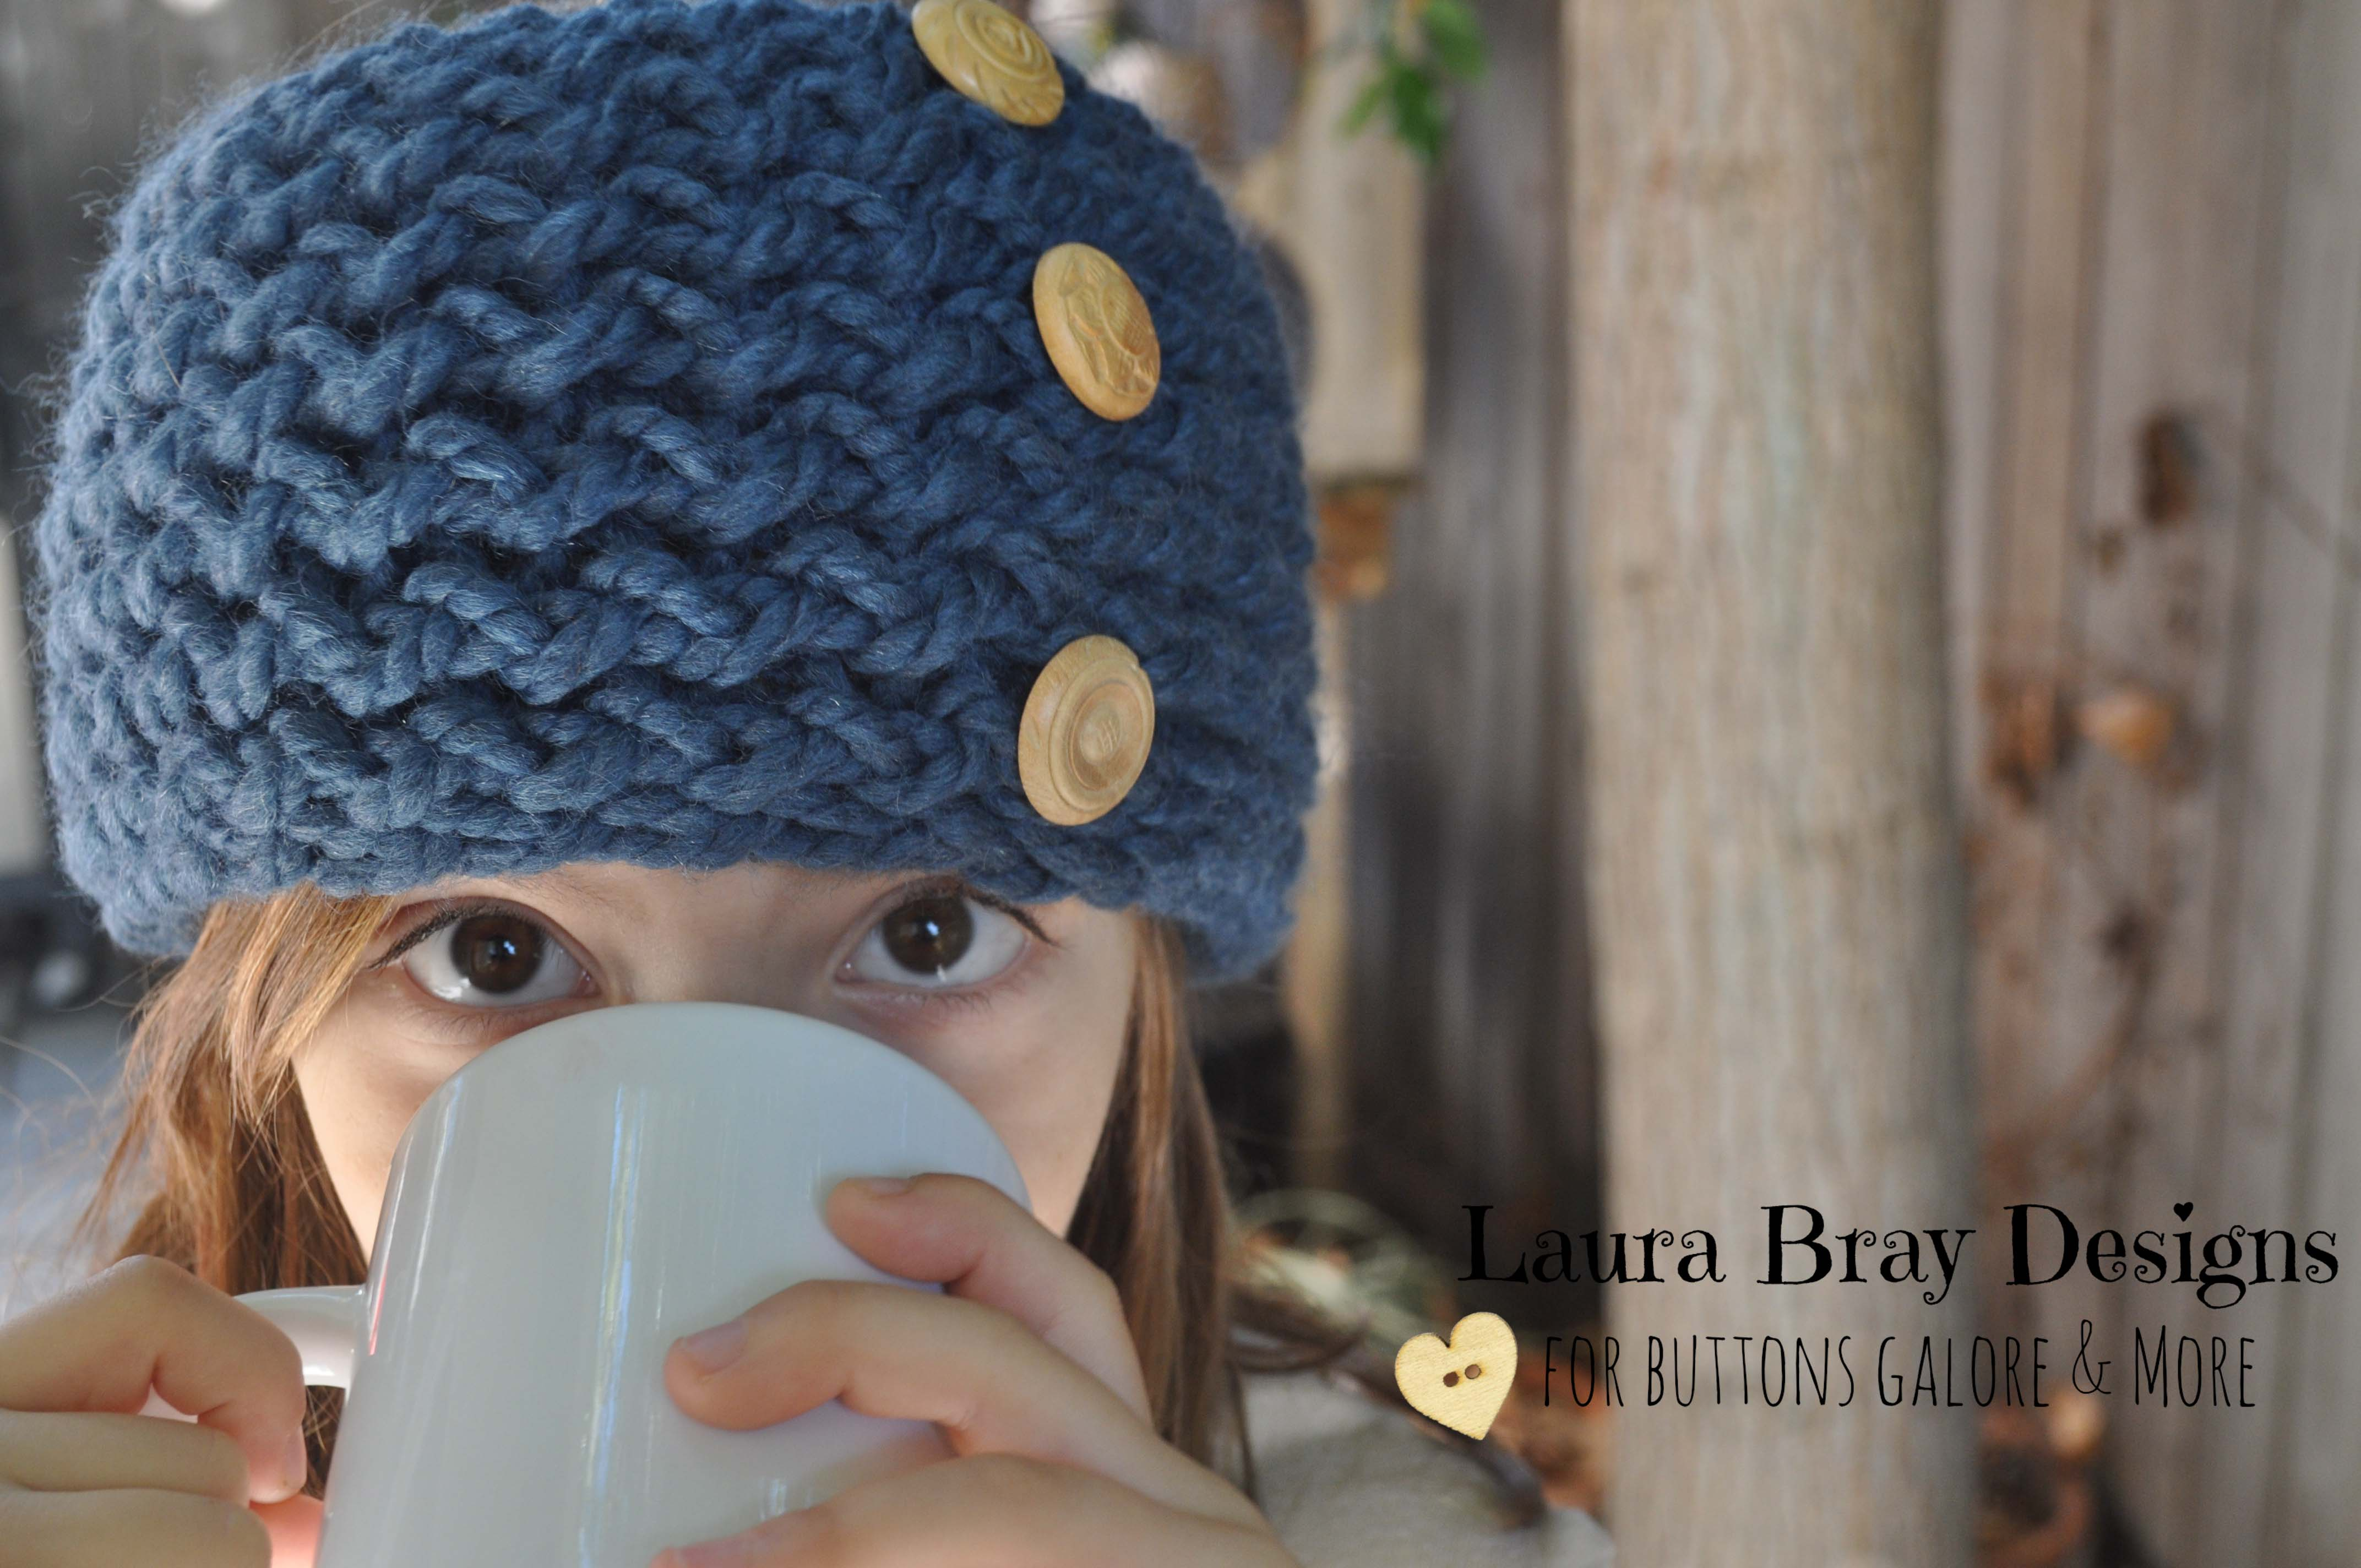 Knit Headband with Wood Buttons